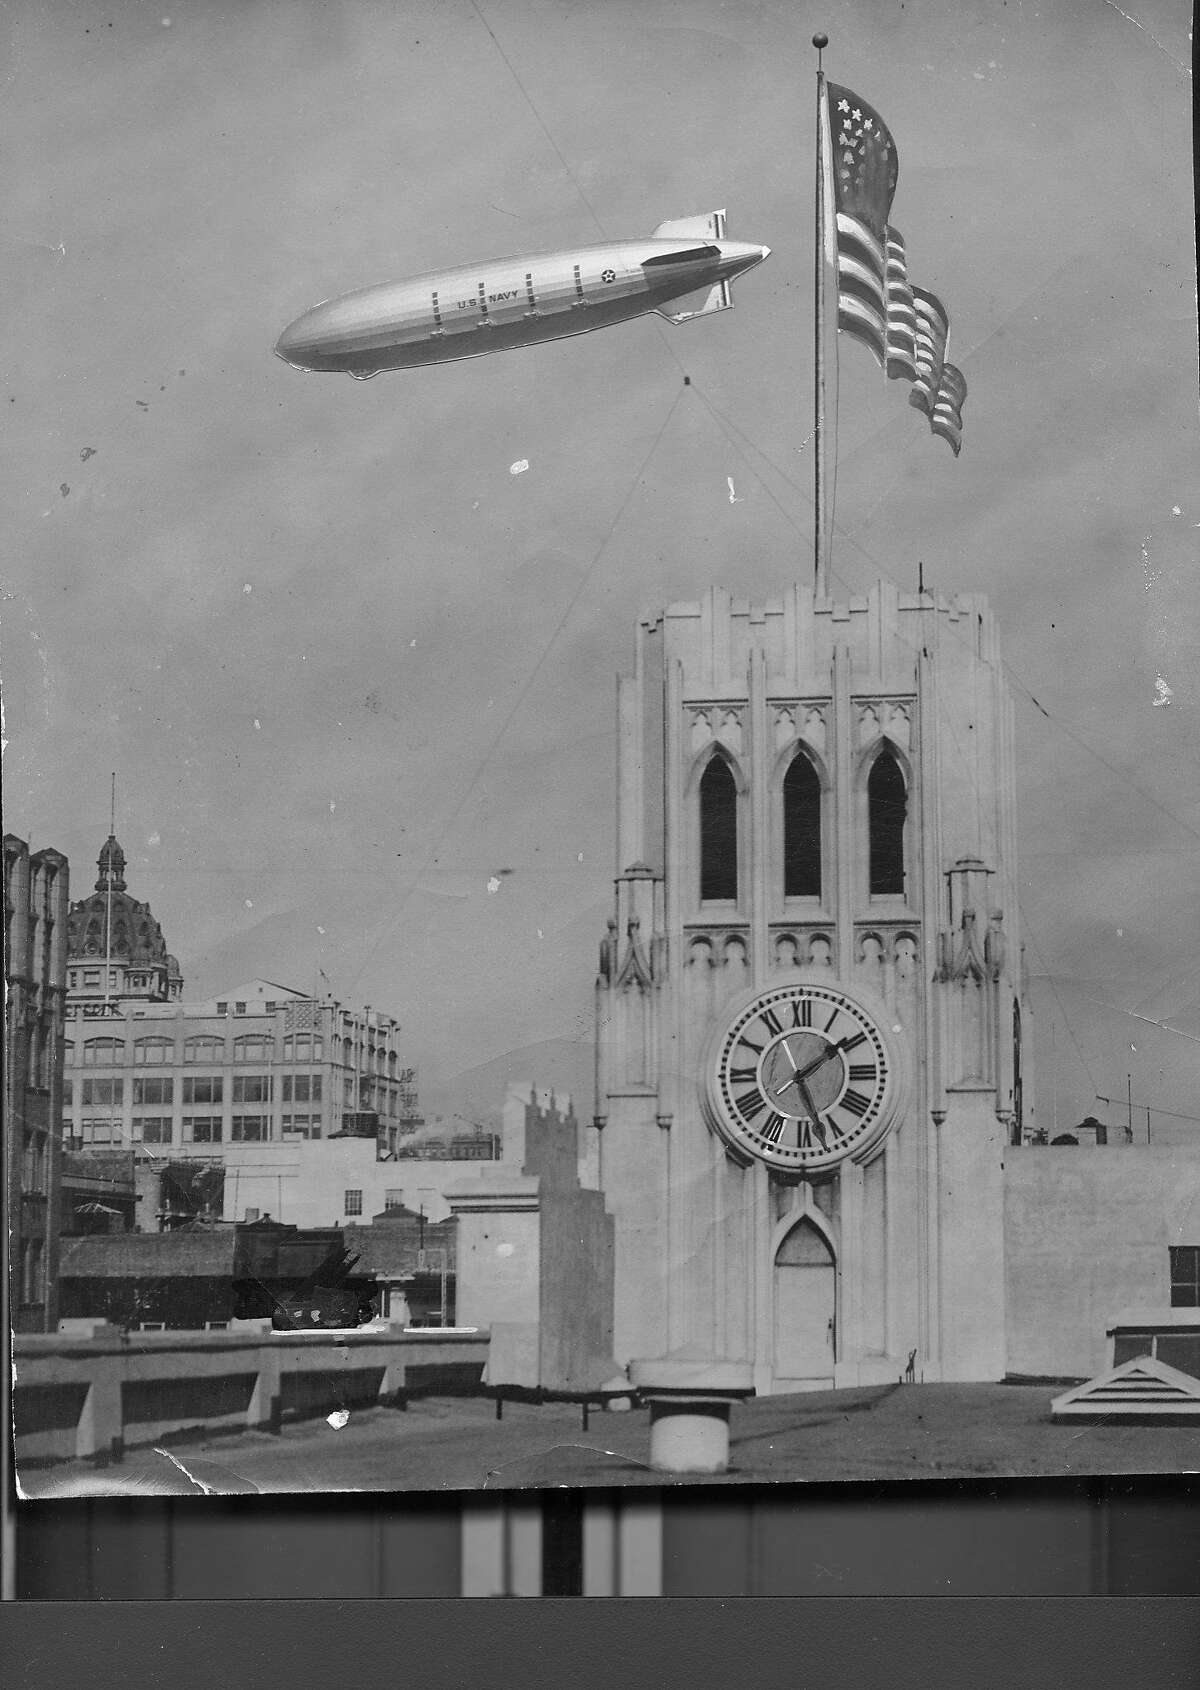 The Macon passing by the San Francisco Chronicle building on it's way south to it's new base at the Sunnyvale Naval Air Station (Moffett Field) October 15, 1933